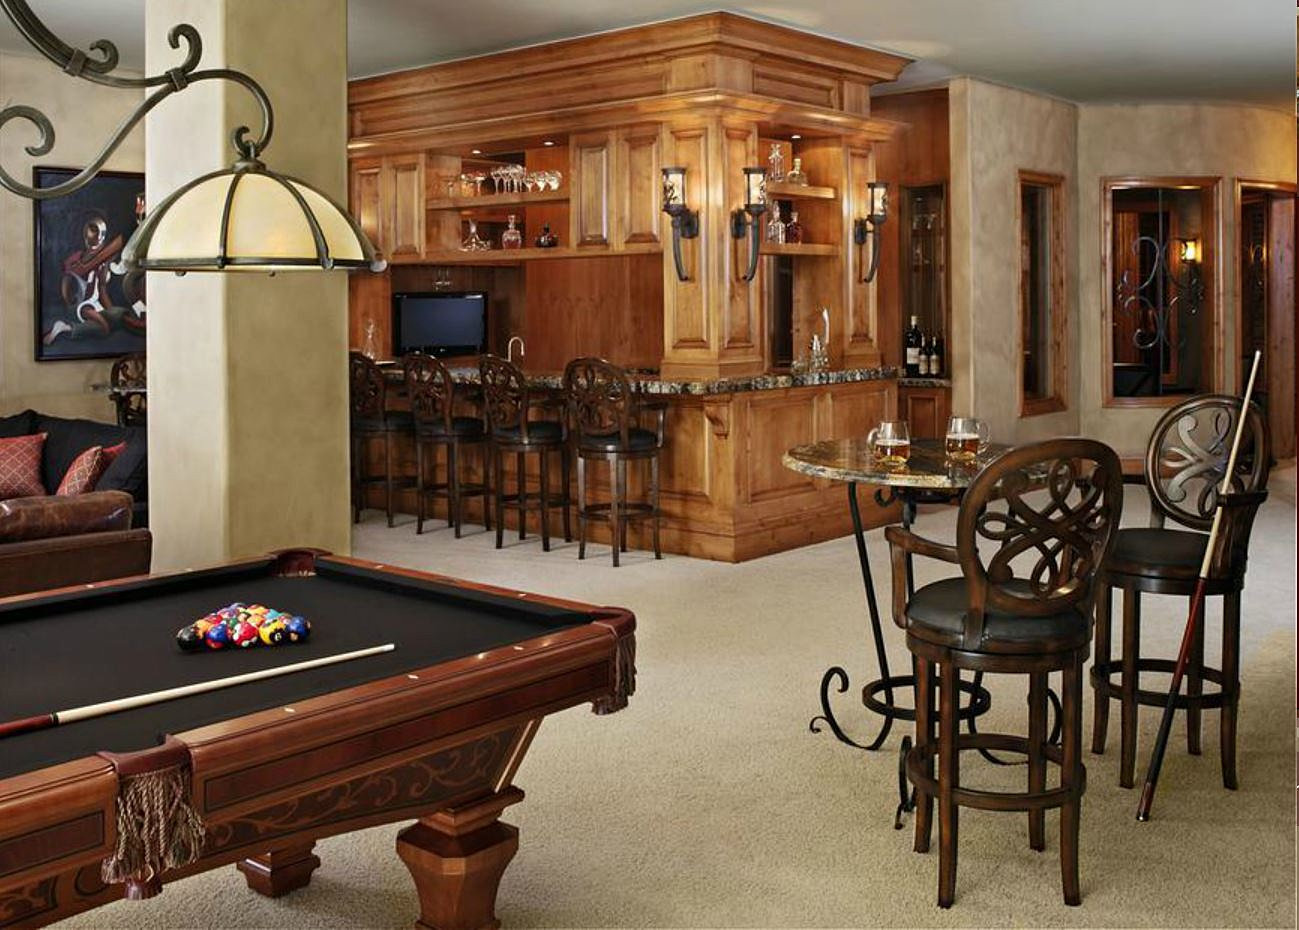 Scottsdale Phoenix Arizona Woodworking And Kitchens And Cabinets Basement Bar